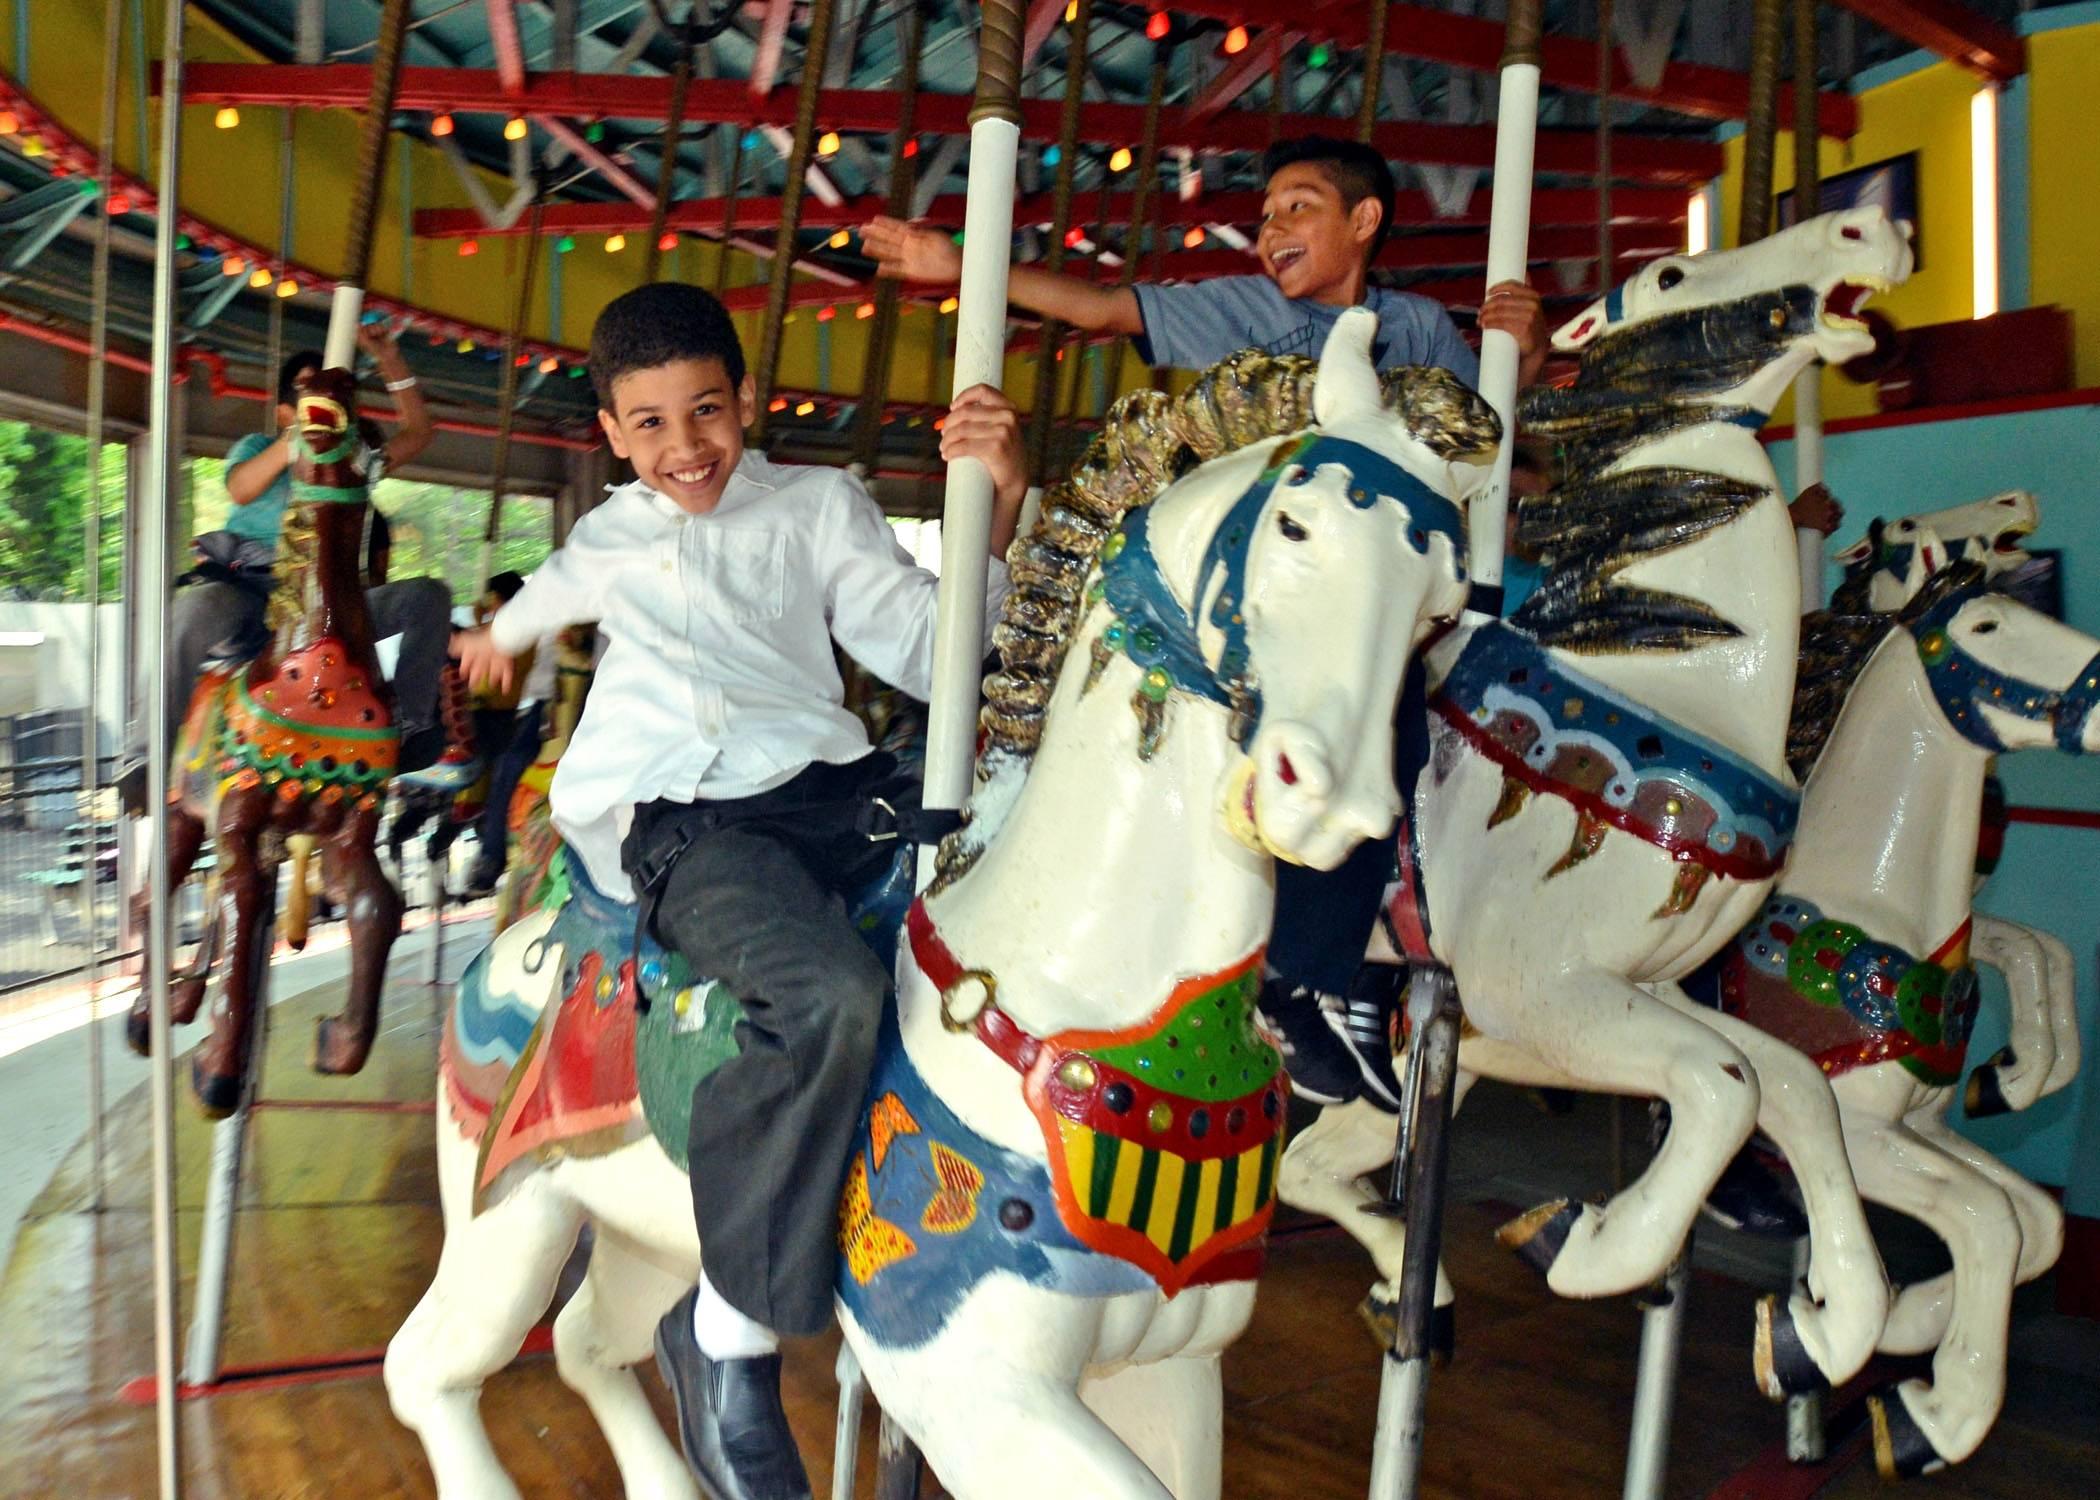 Children ride a carousel that dates to the early 1900s. It was brought to Queens from Coney Island, Brooklyn, for the 1964 World's Fair. Today the carousel is located near the Queens Zoo, one of a number of attractions that can be seen as Queens marks the 50th anniversary of the fair.